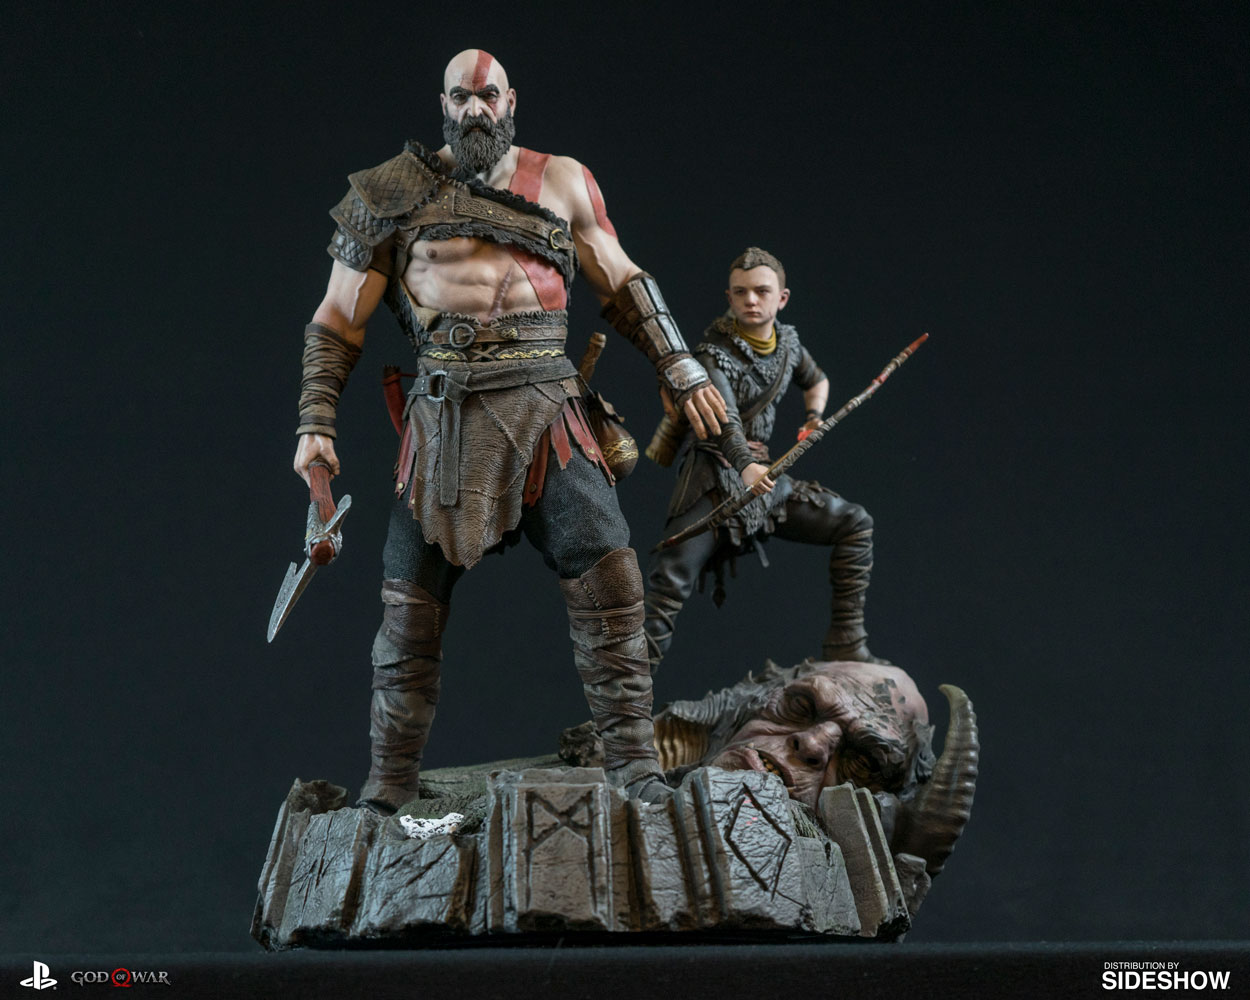 New God of War 4 Kratos and Atreus Statue by Sony - The Toyark - News